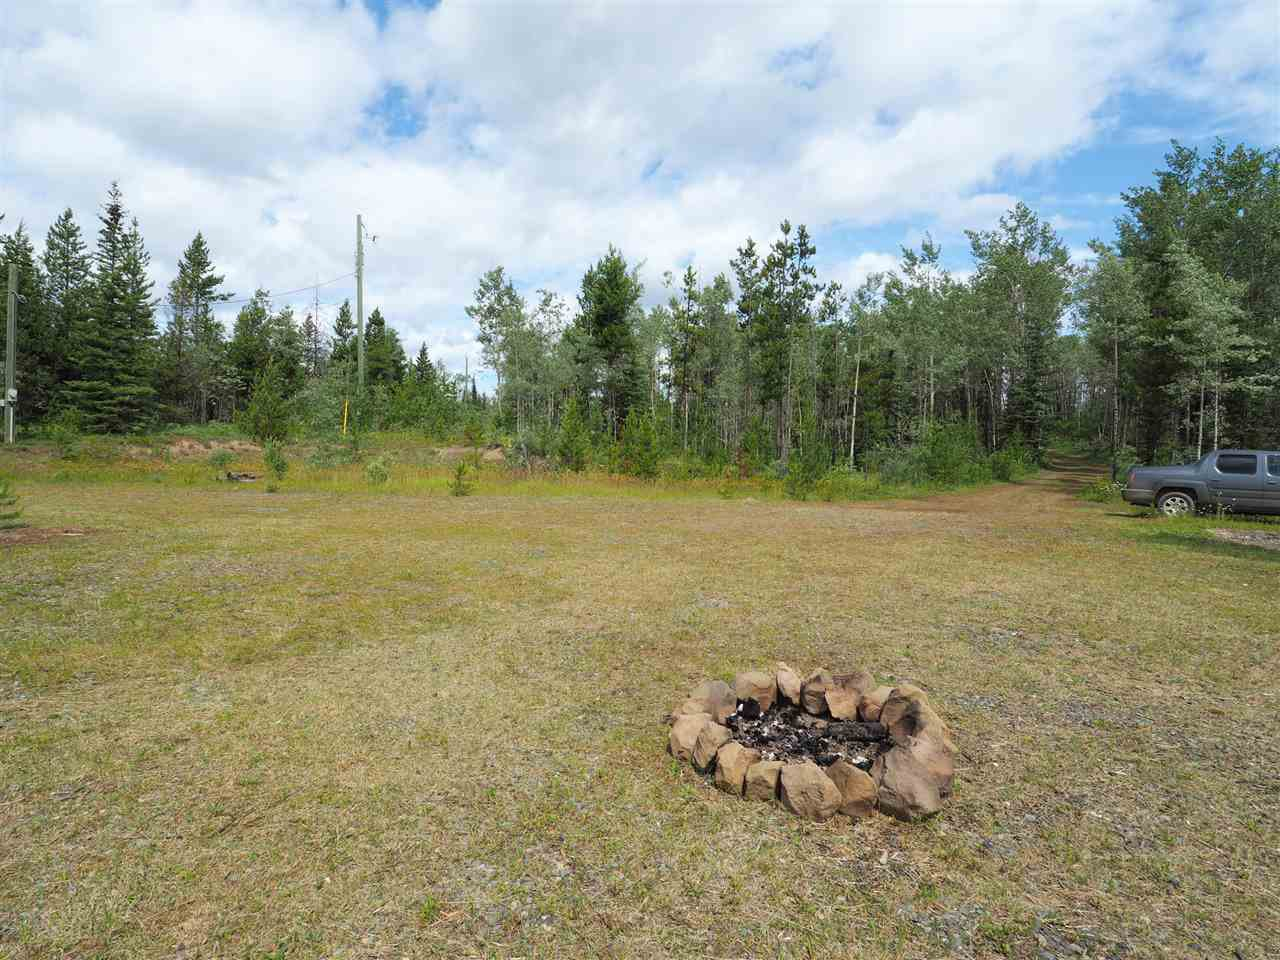 Photo 7: Photos: 5532 LITTLE FORT 24 Highway in Lone Butte: Lone Butte/Green Lk/Watch Lk Land for sale (100 Mile House (Zone 10))  : MLS®# R2419528